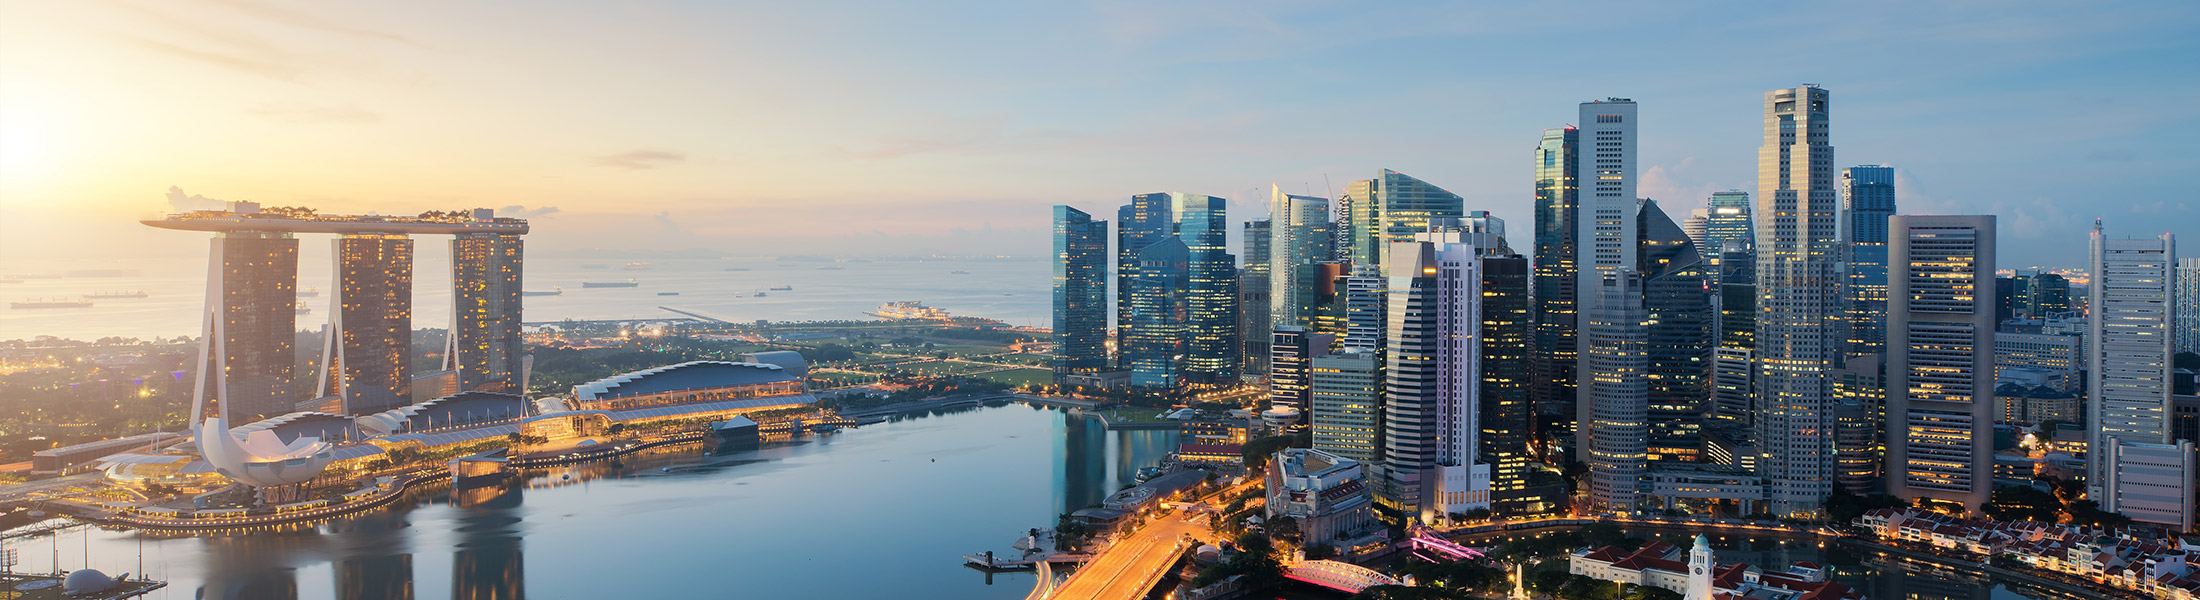 Singapore City's skyline at sunset